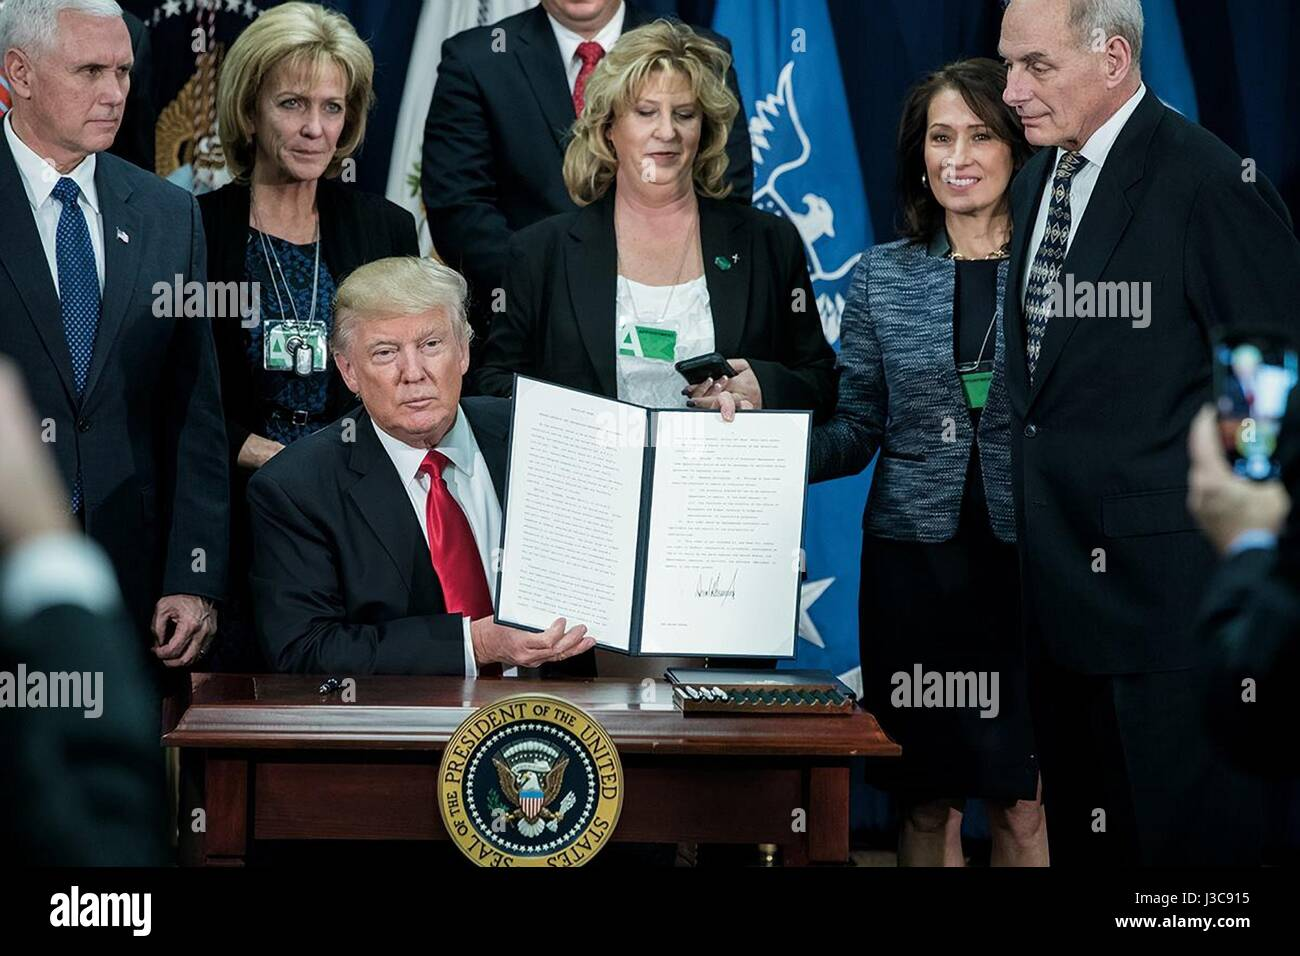 U.S. President Donald Trump holds up the signed Executive Order enhancing border security and immigration enforcement - Stock Image